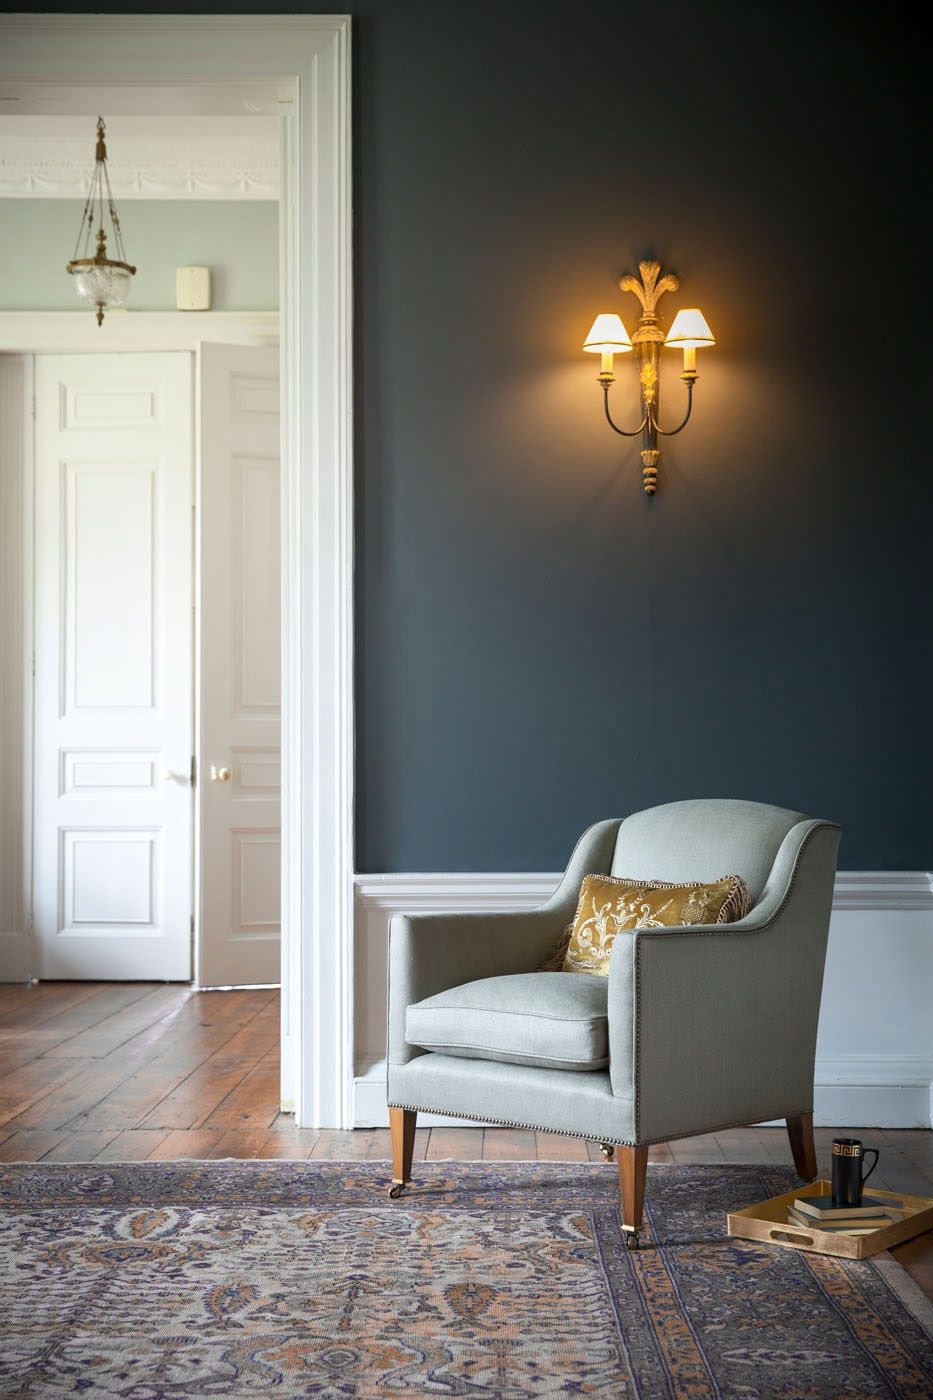 The Edgar is a beautifully proportioned, contemporary and comfortable armchair with a separate seat cushion. Pictured here in Donegal linen (Oatmeal).